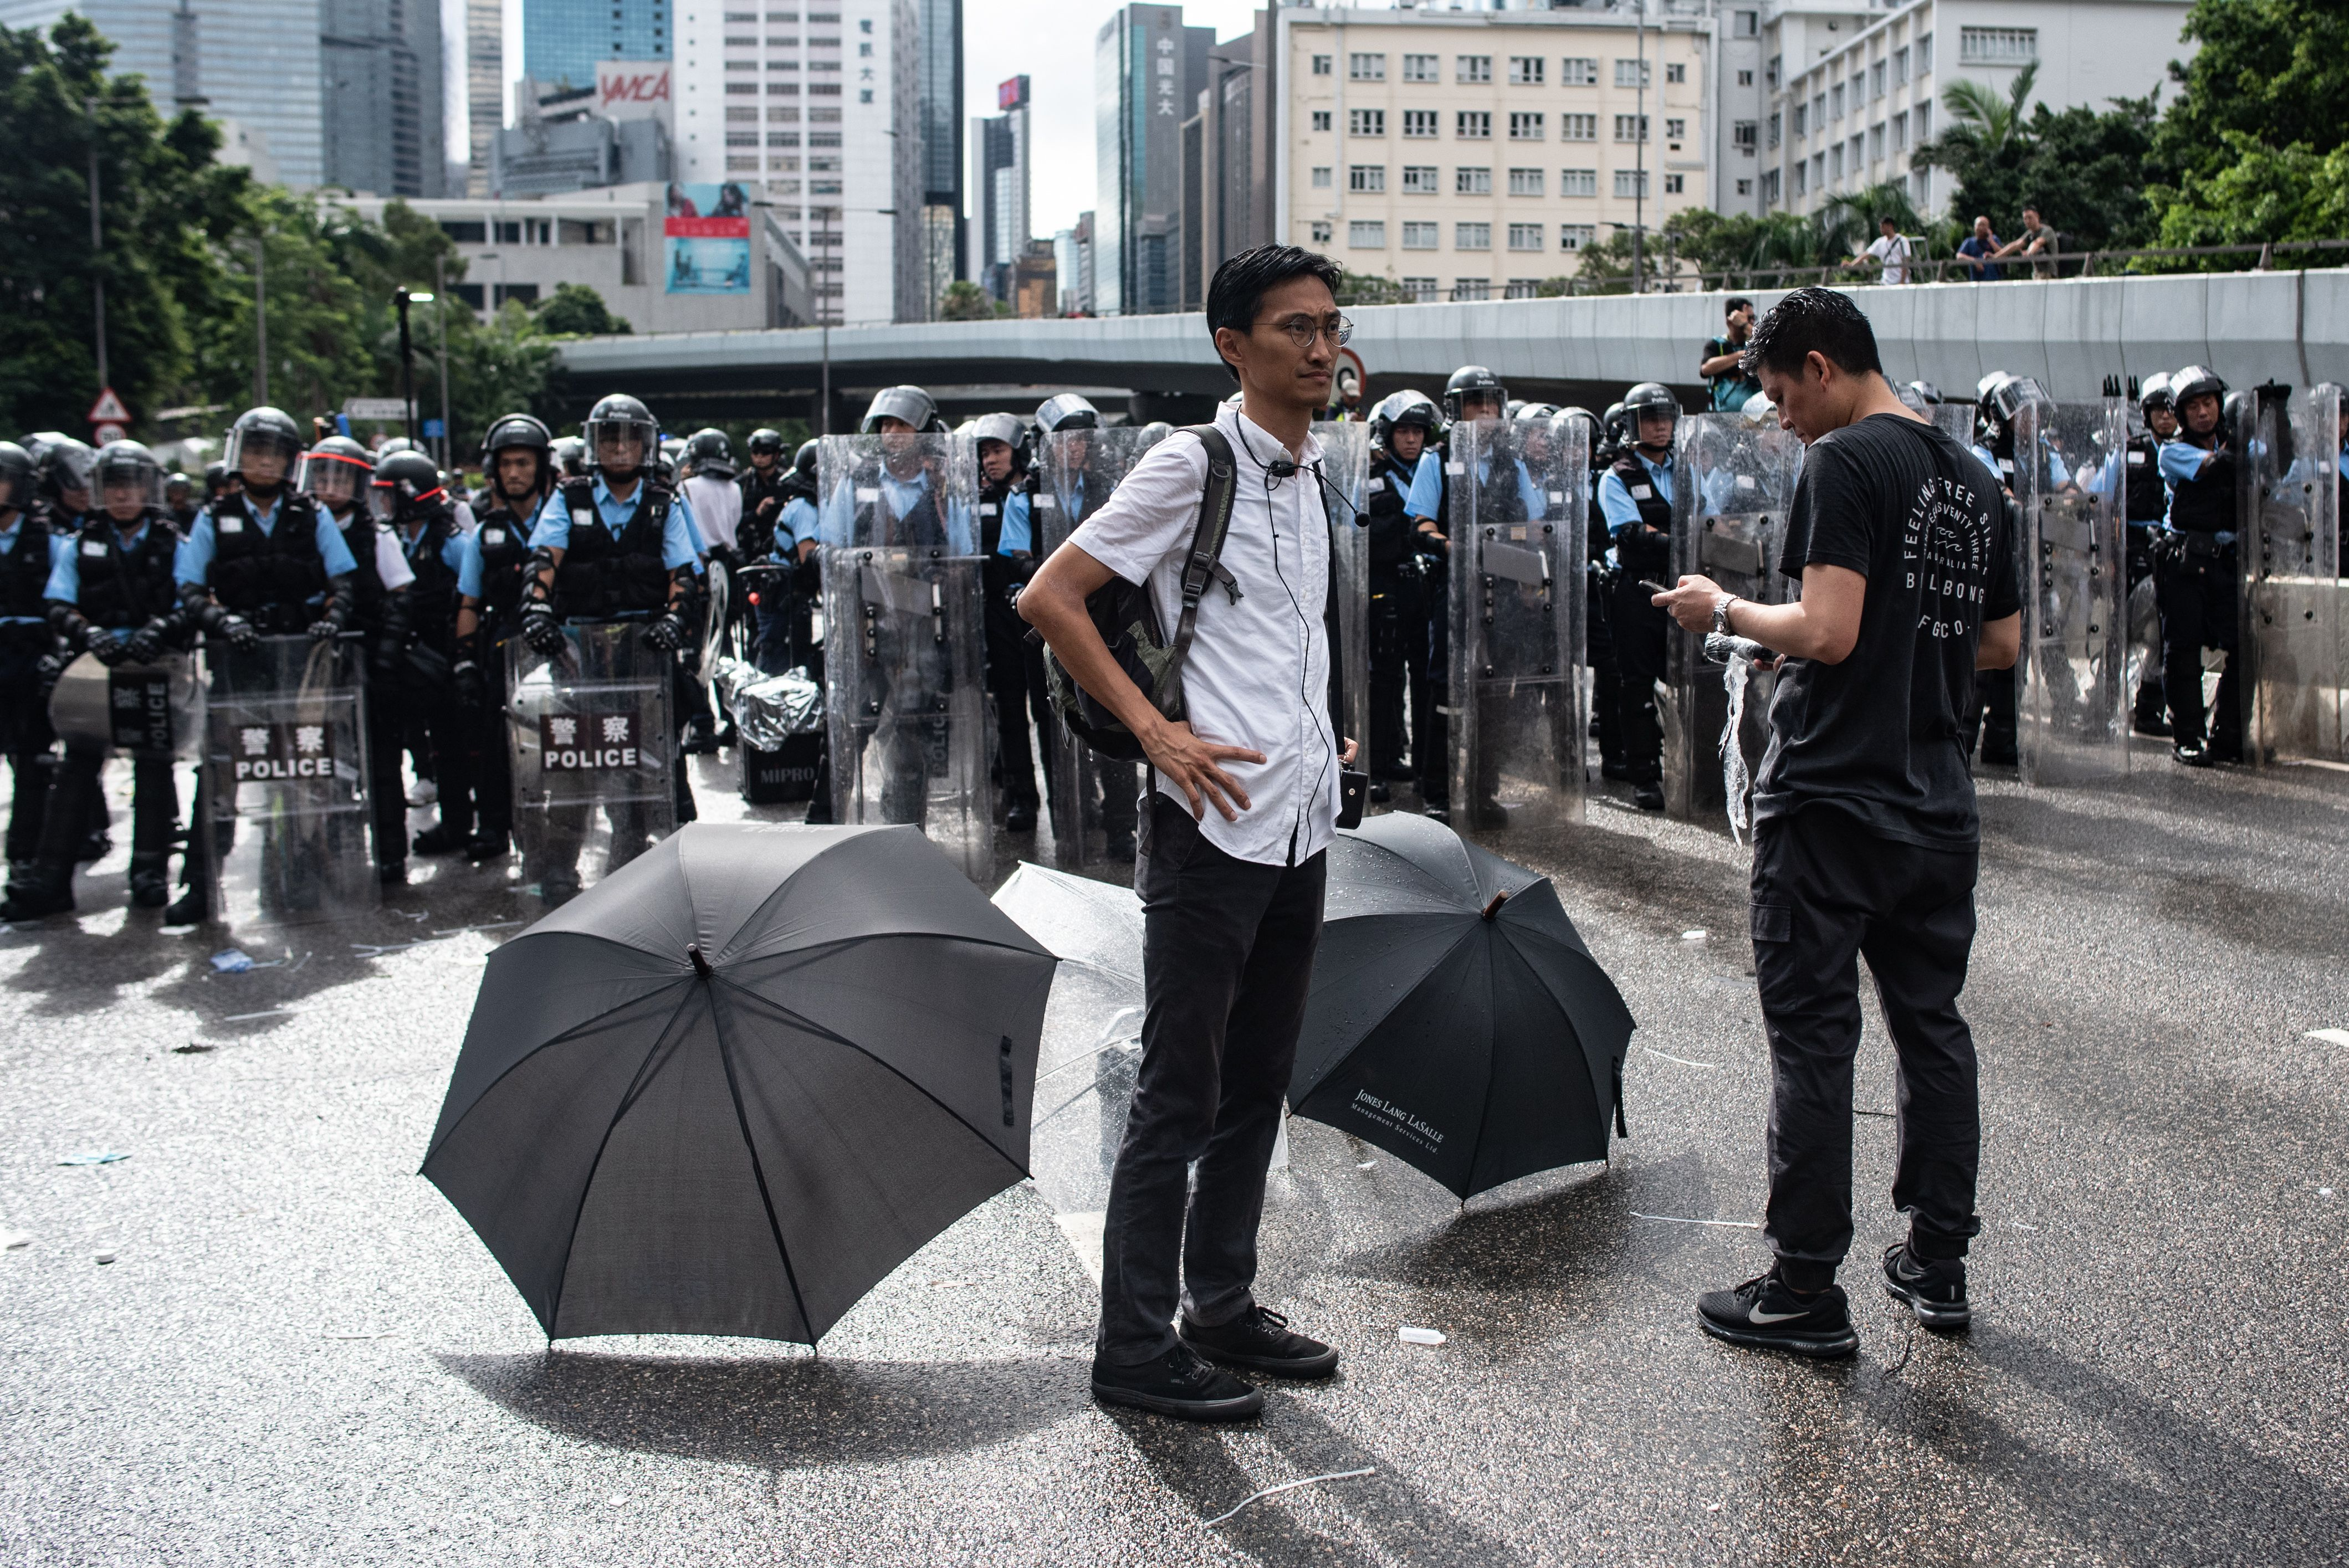 Pro-democracy lawmaker Eddie Chu (L) and Jeremy Tam (R) stand before a police line on Harcourt Road outside the government headquarters after the annual flag raising ceremony to mark the 22nd anniversary of the city's handover from Britain to China, in Hong Kong on July 1.